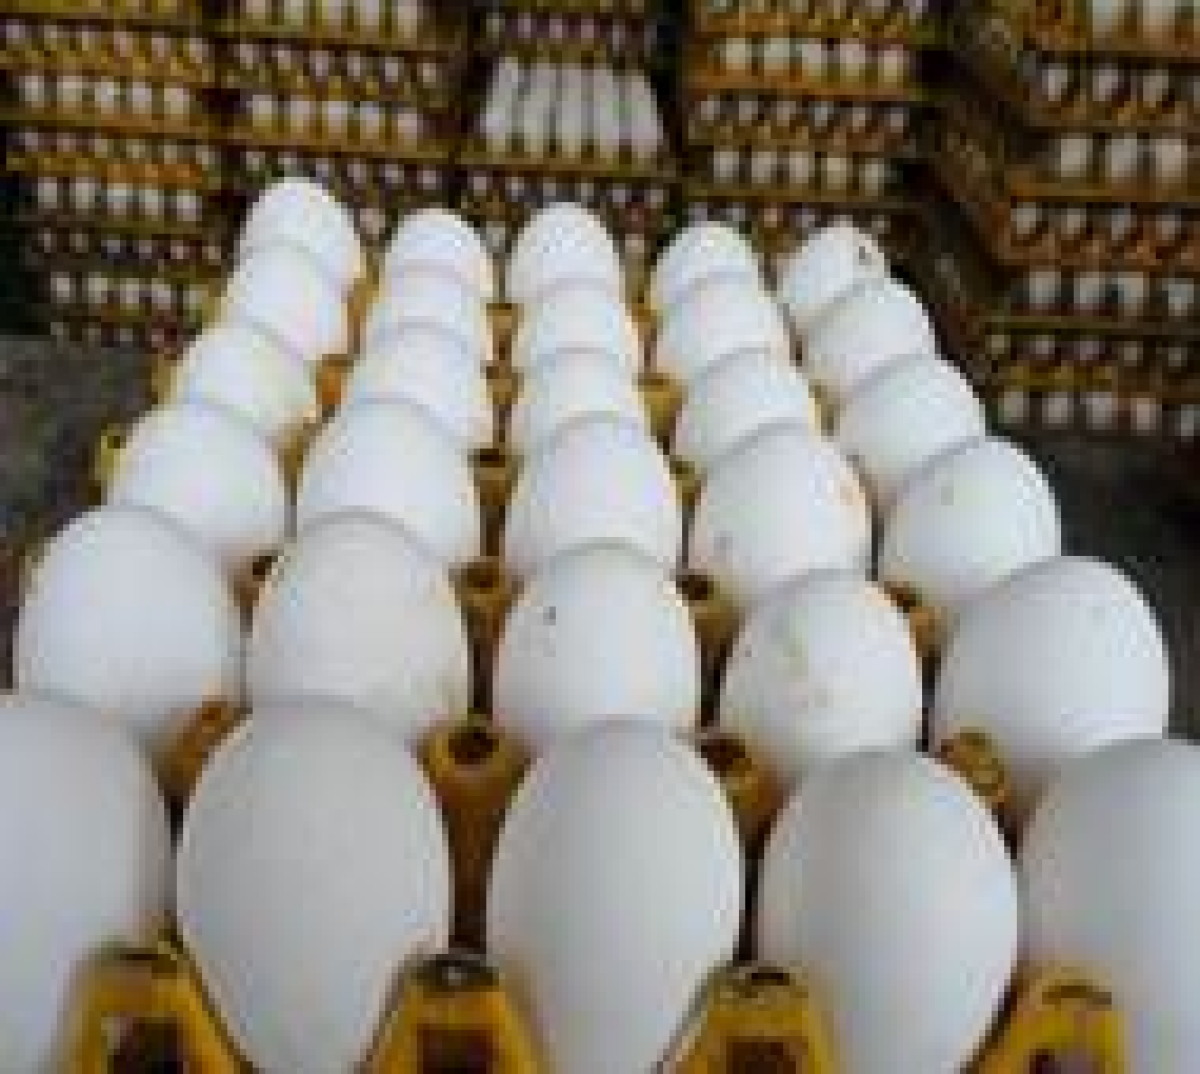 Mumbai: Hardboiled reality; Egg prices surging